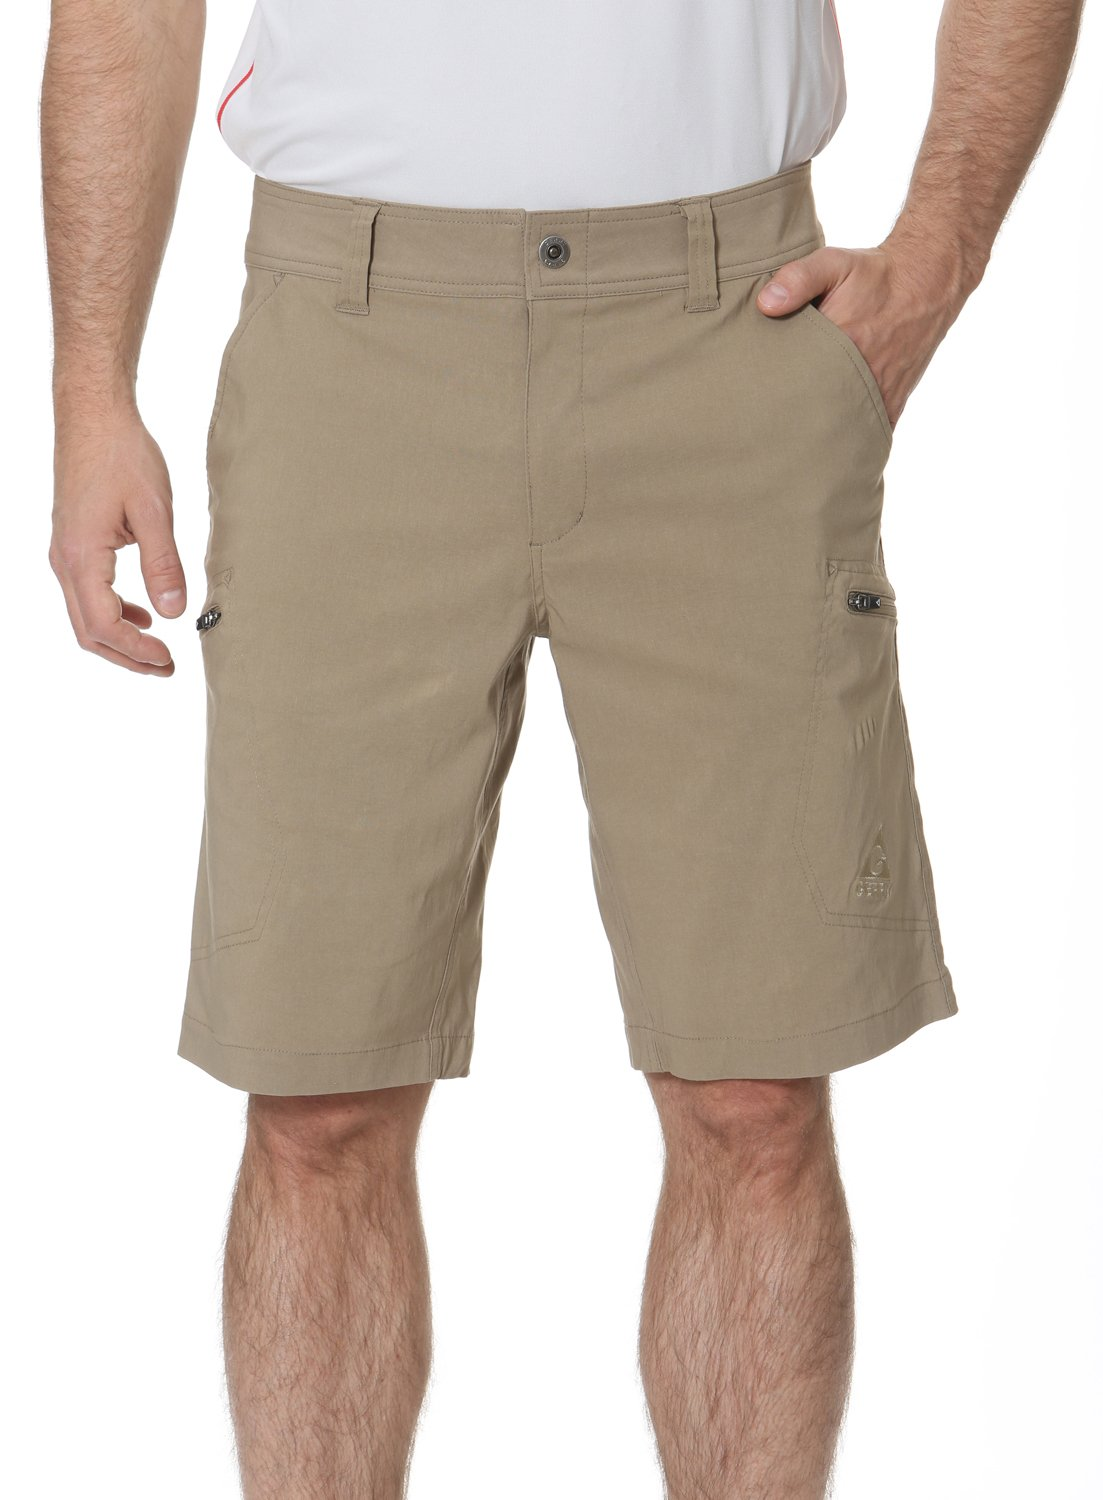 Gerry Stretch River Hiking Short (34, Oak)… by Gerry